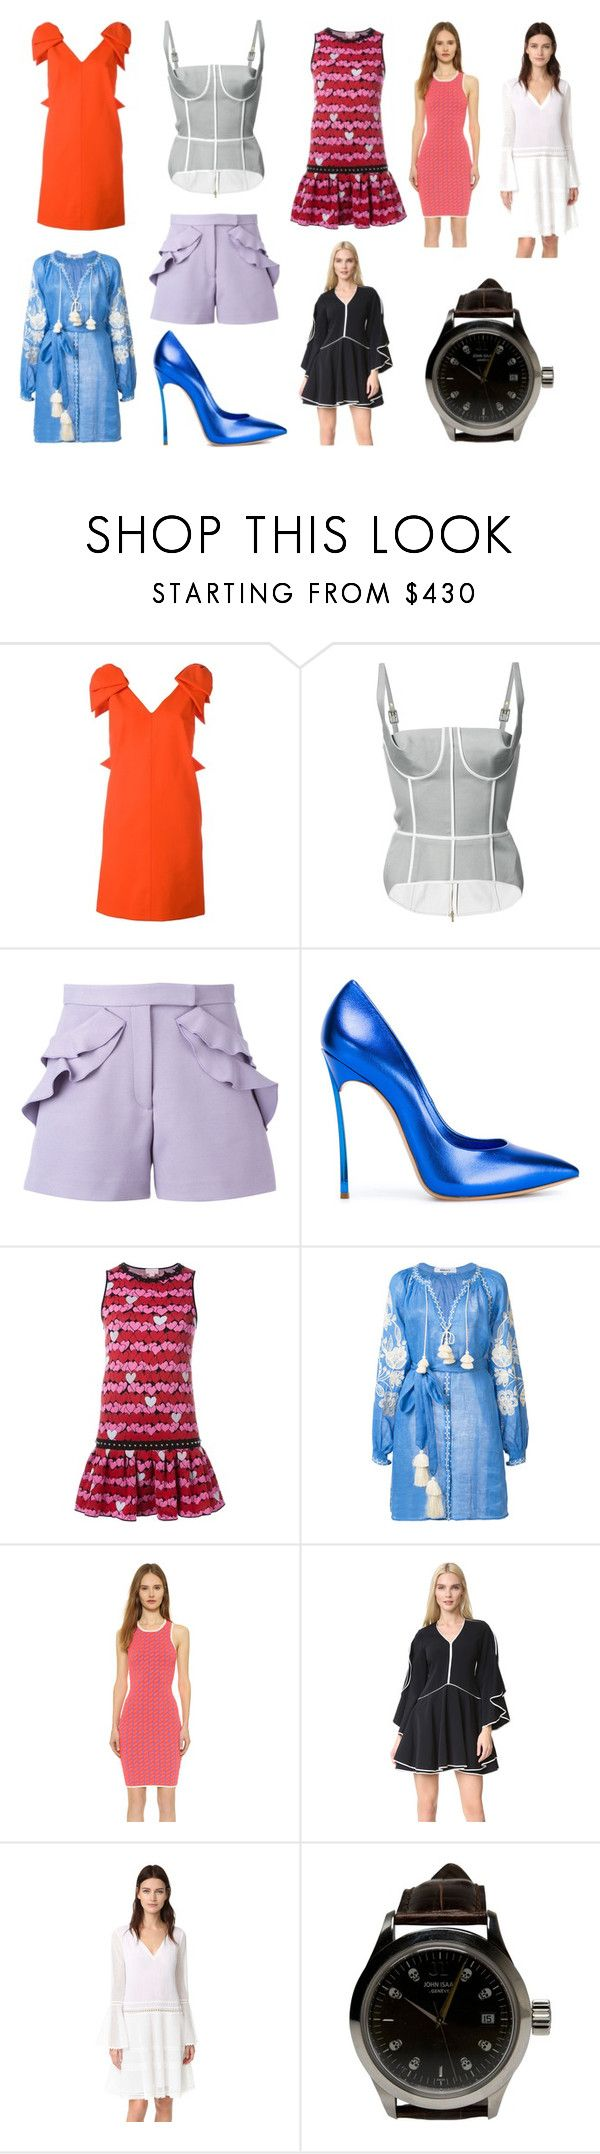 """Sudden new offered sale"" by donna-wang1 ❤ liked on Polyvore featuring MSGM, Thom Browne, Elie Saab, Casadei, Giamba, March 11, Jonathan Simkhai and John Isaac"